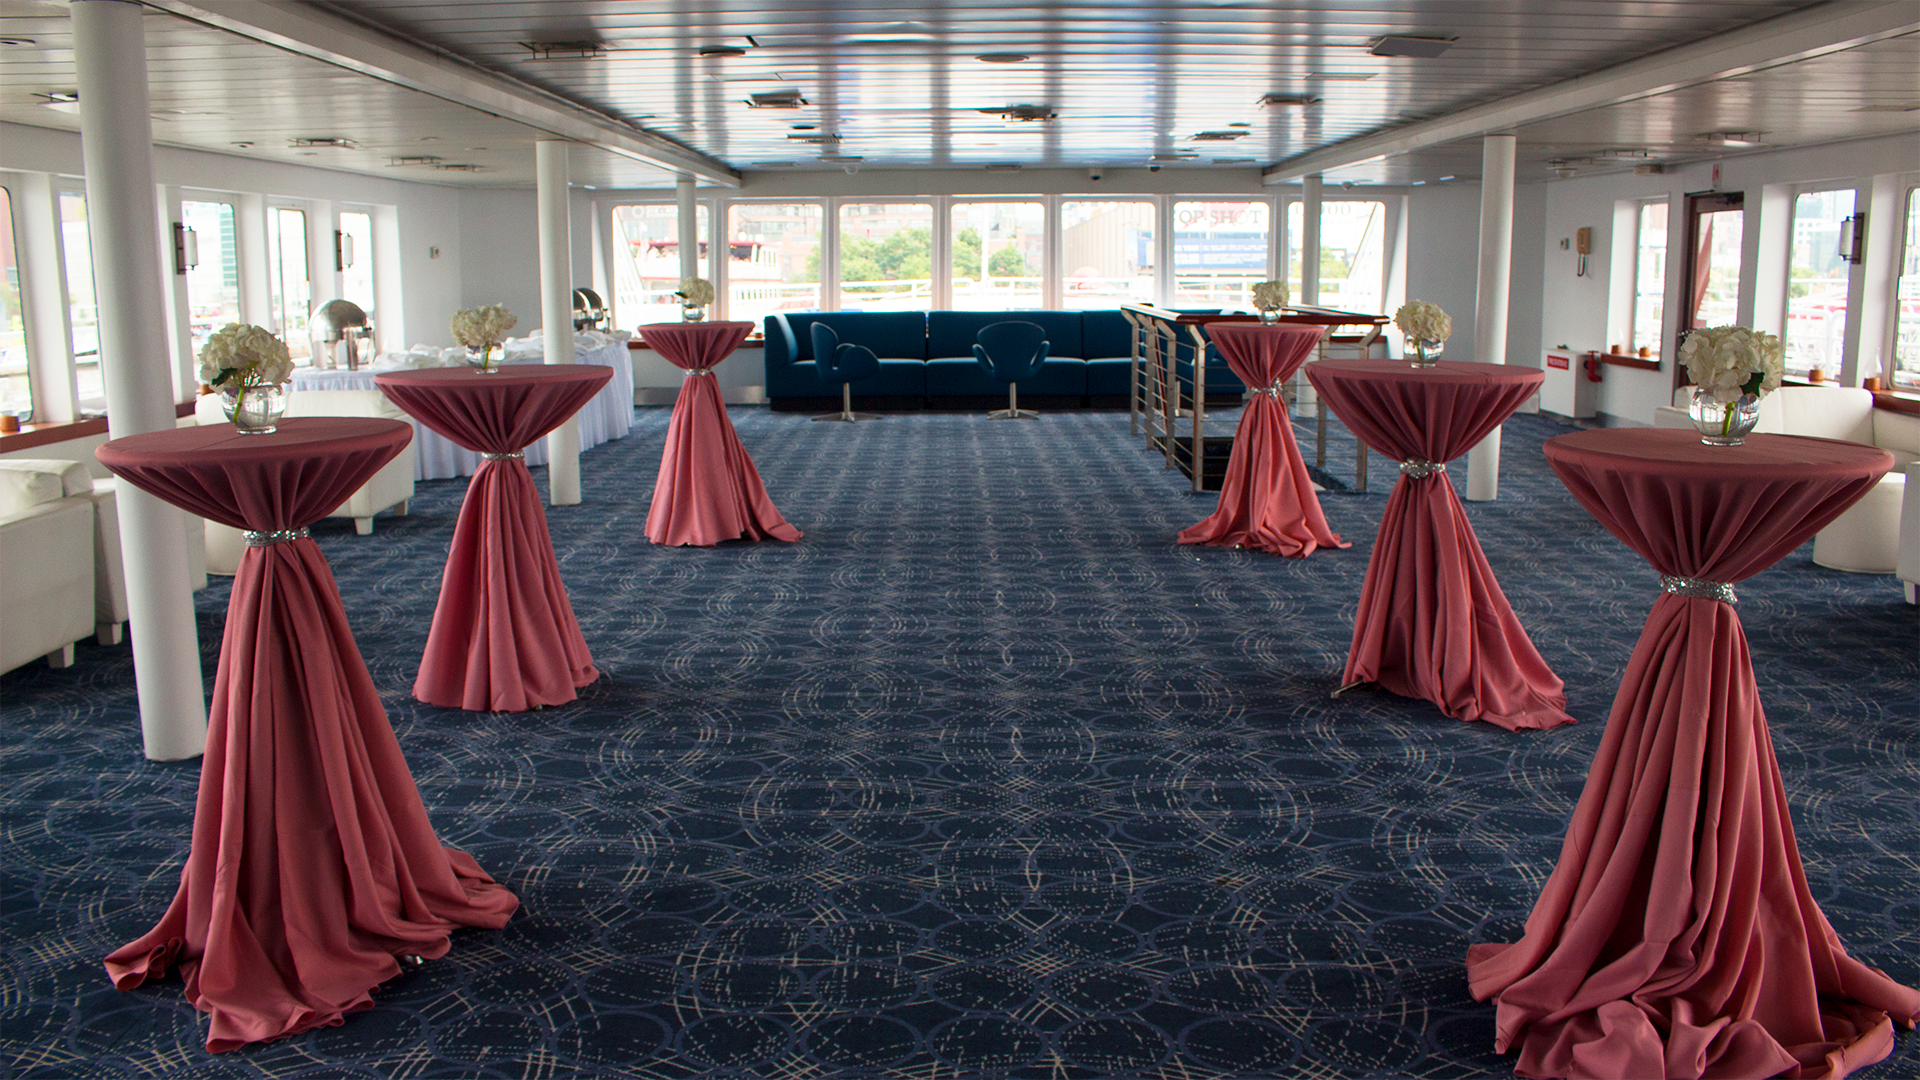 Duchess event space at World Yacht in New York City, NYC, NY/NJ Area